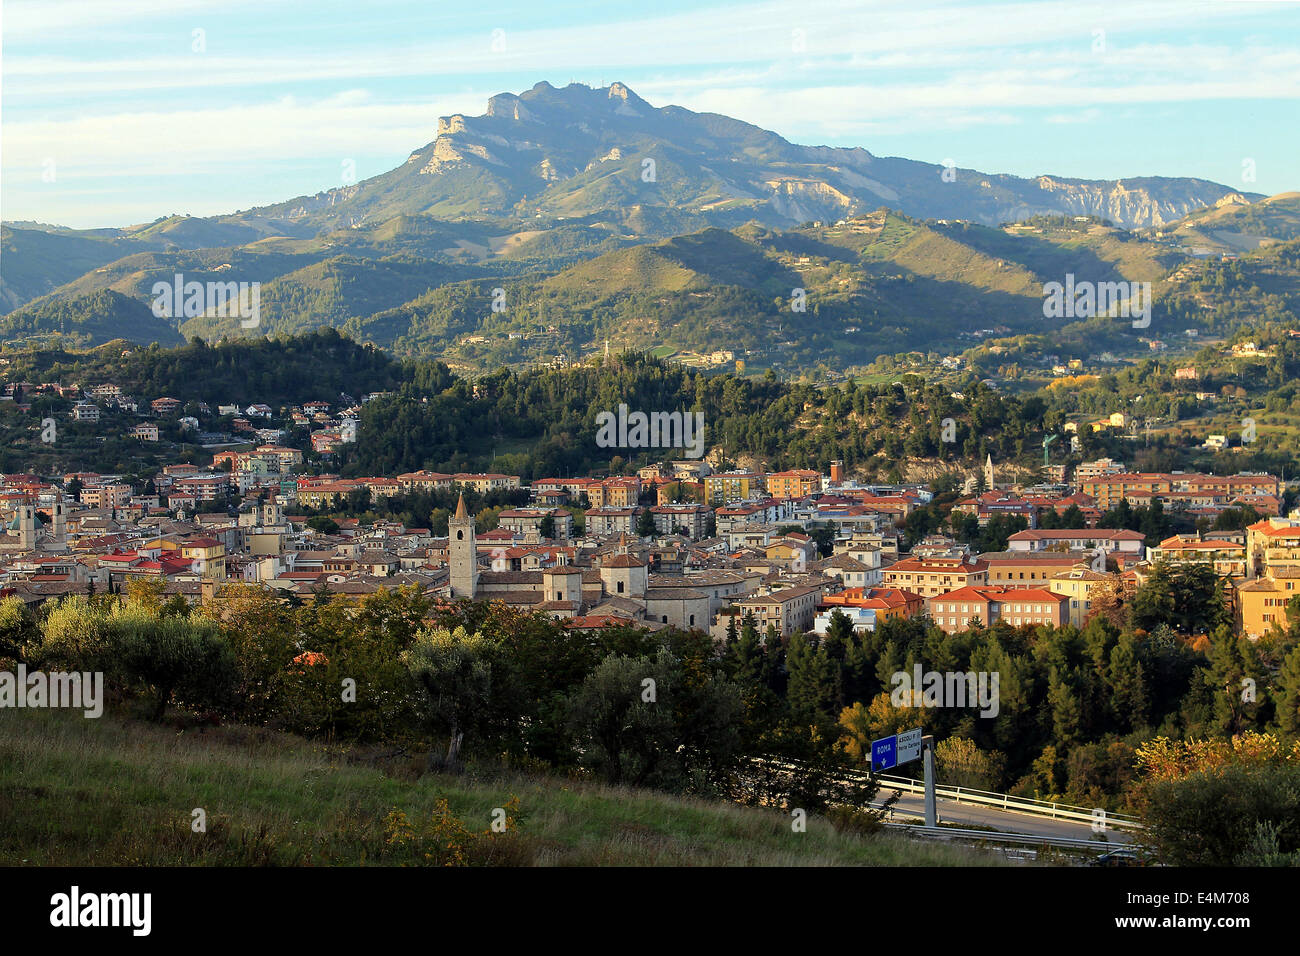 Panoramic view of the mountain behind the city of Ascoli Piceno, Marches, Italy - Stock Image